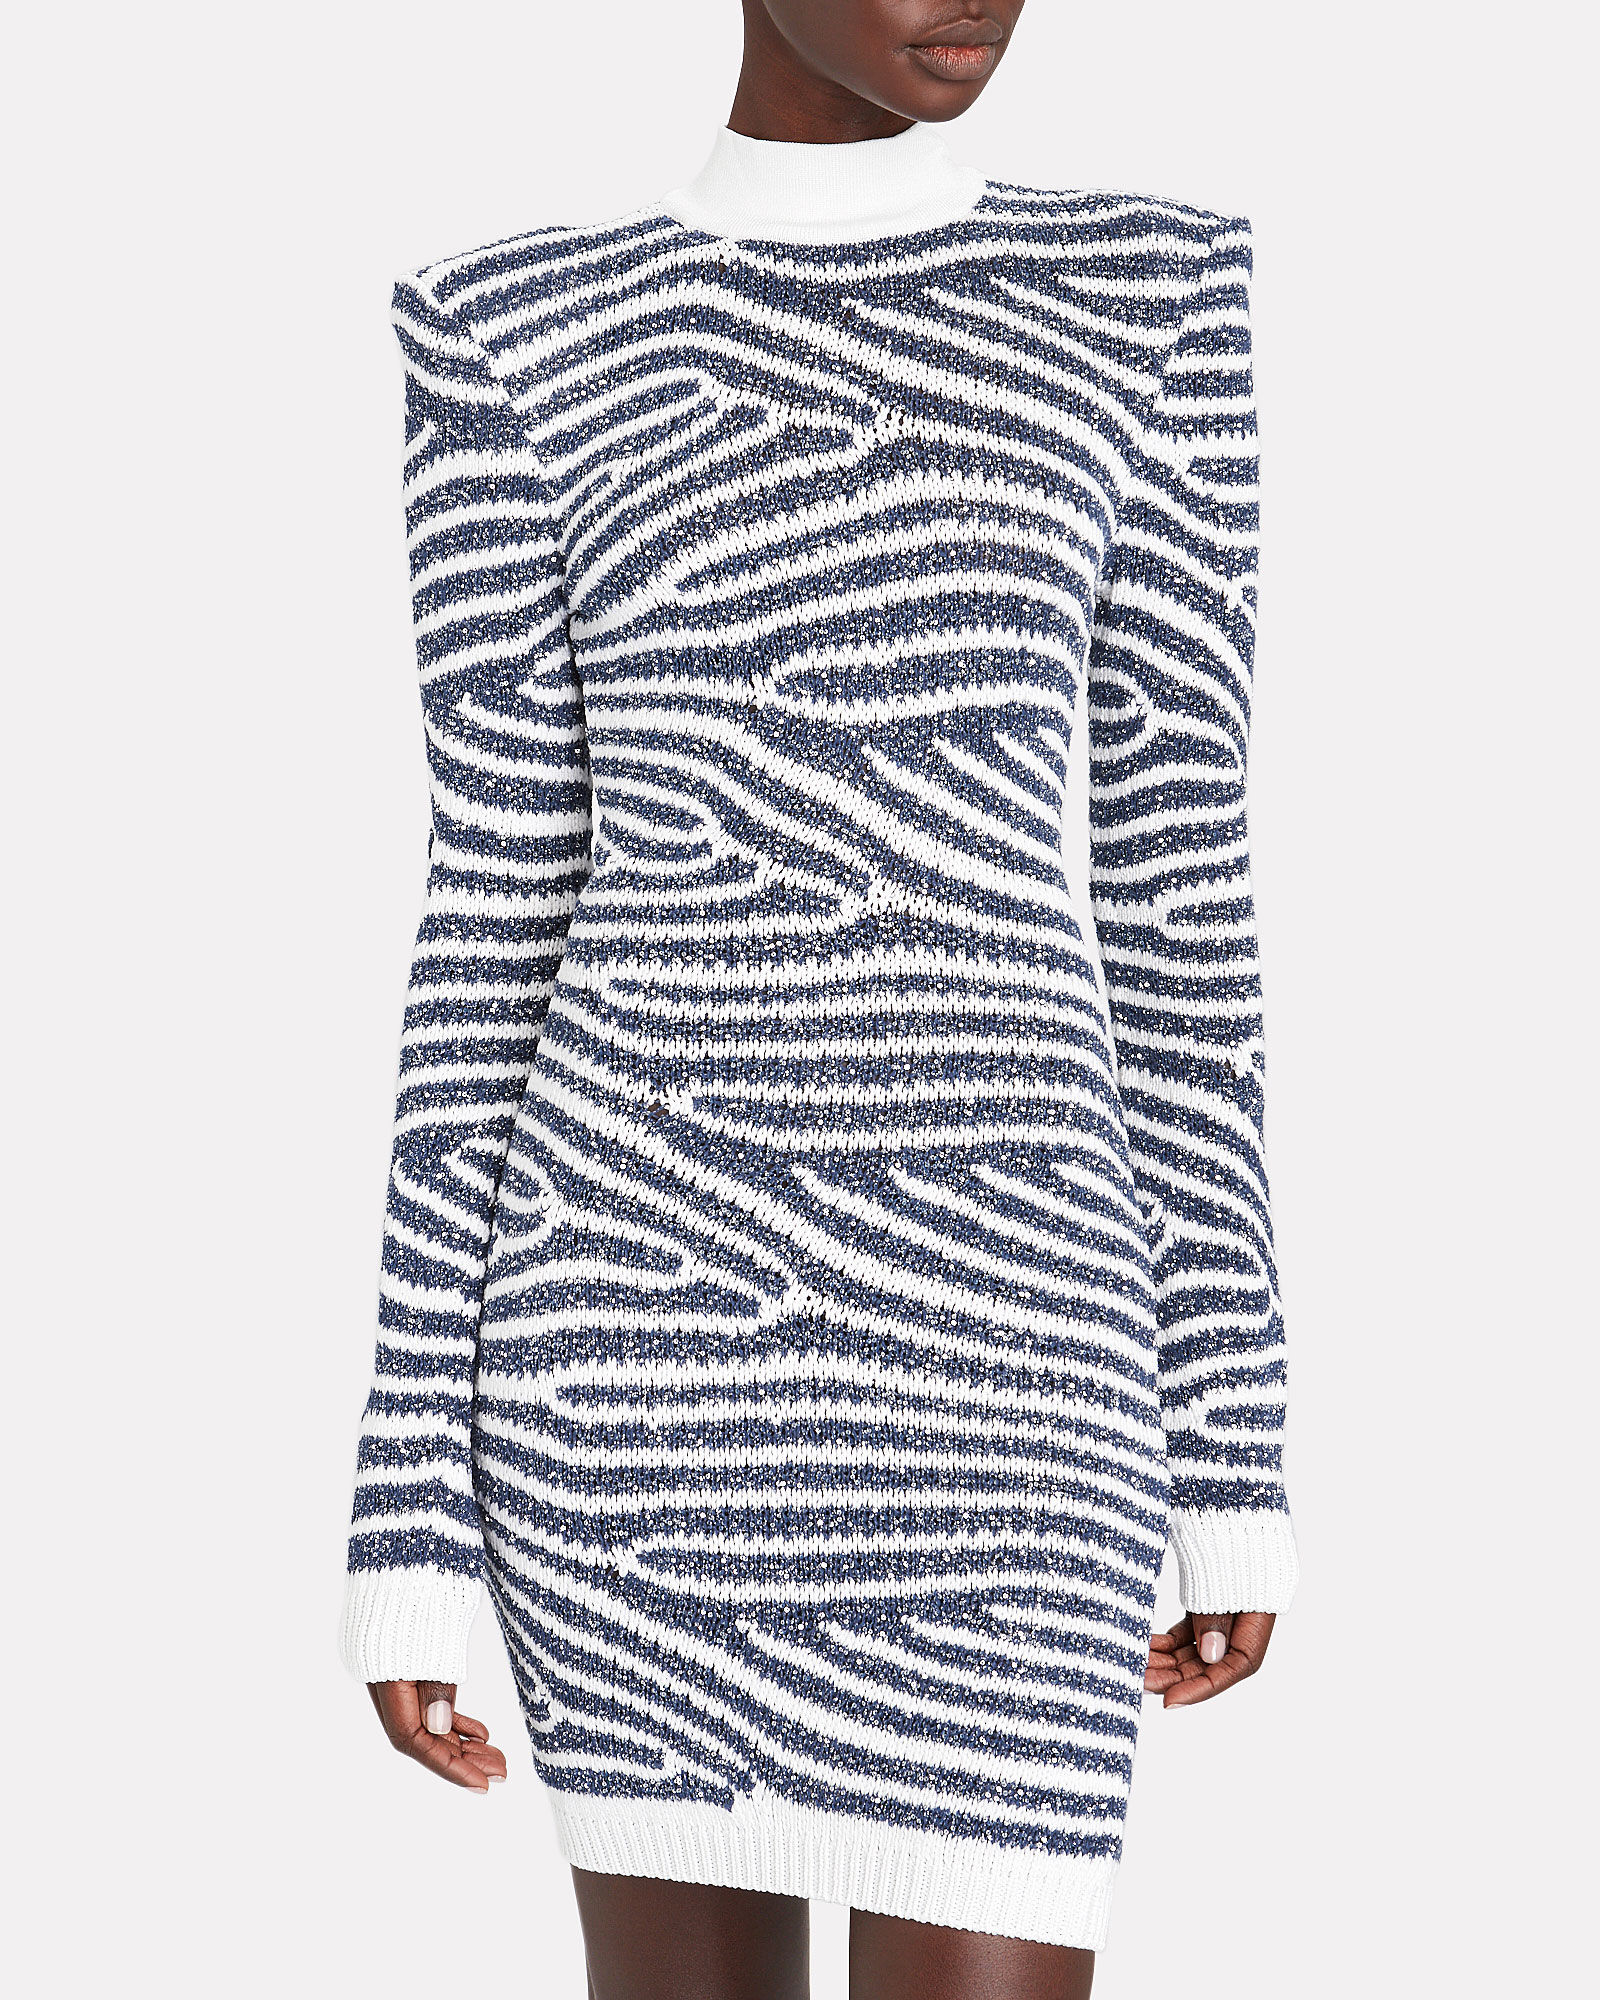 Sequined Striped Sweater Dress, BLUE-DRK, hi-res